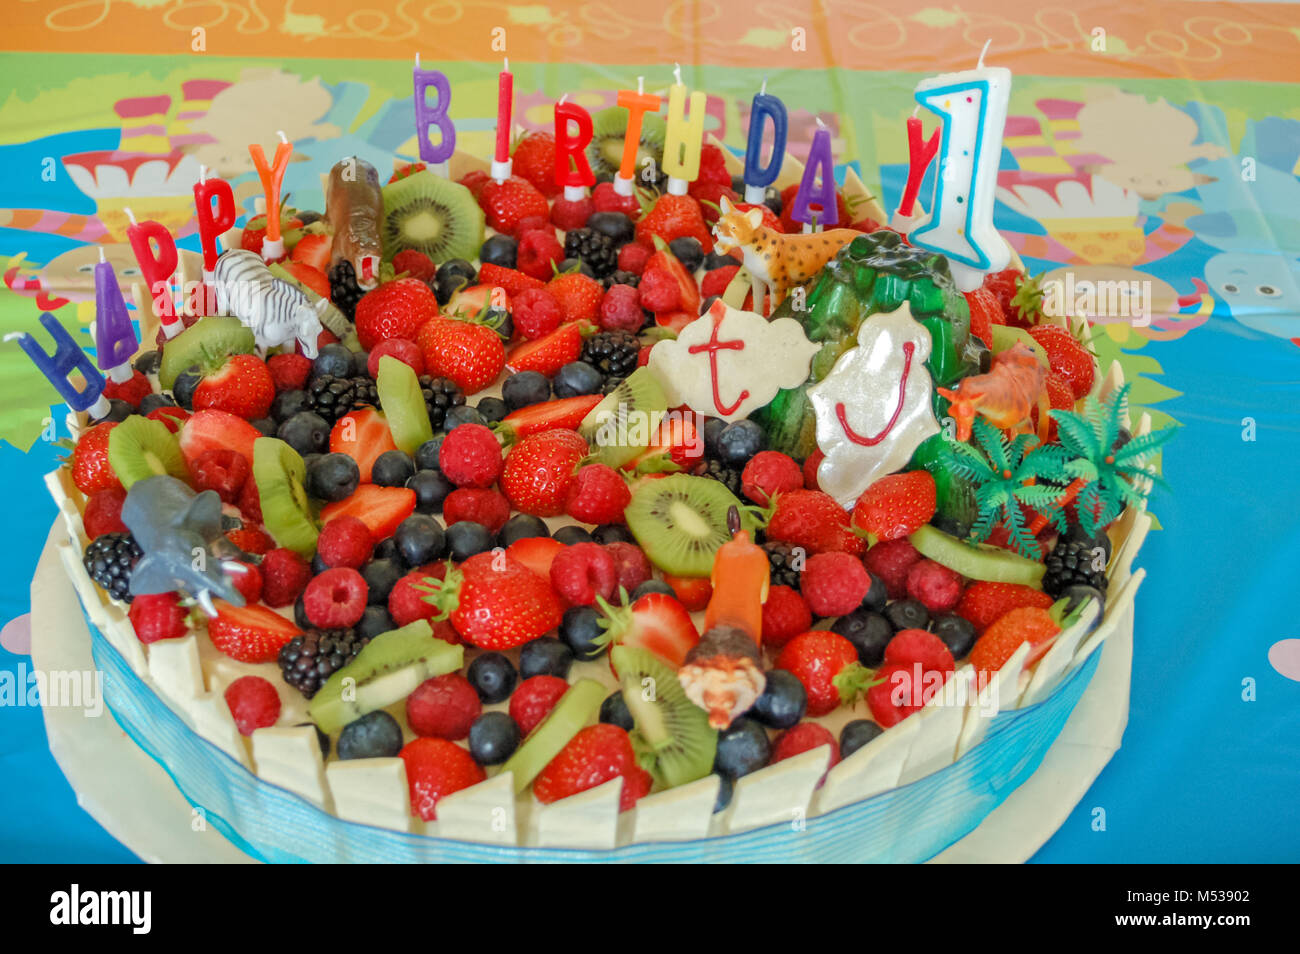 A First Birthday Cake Decorated With Summer Fruits Toy Animals And Candles